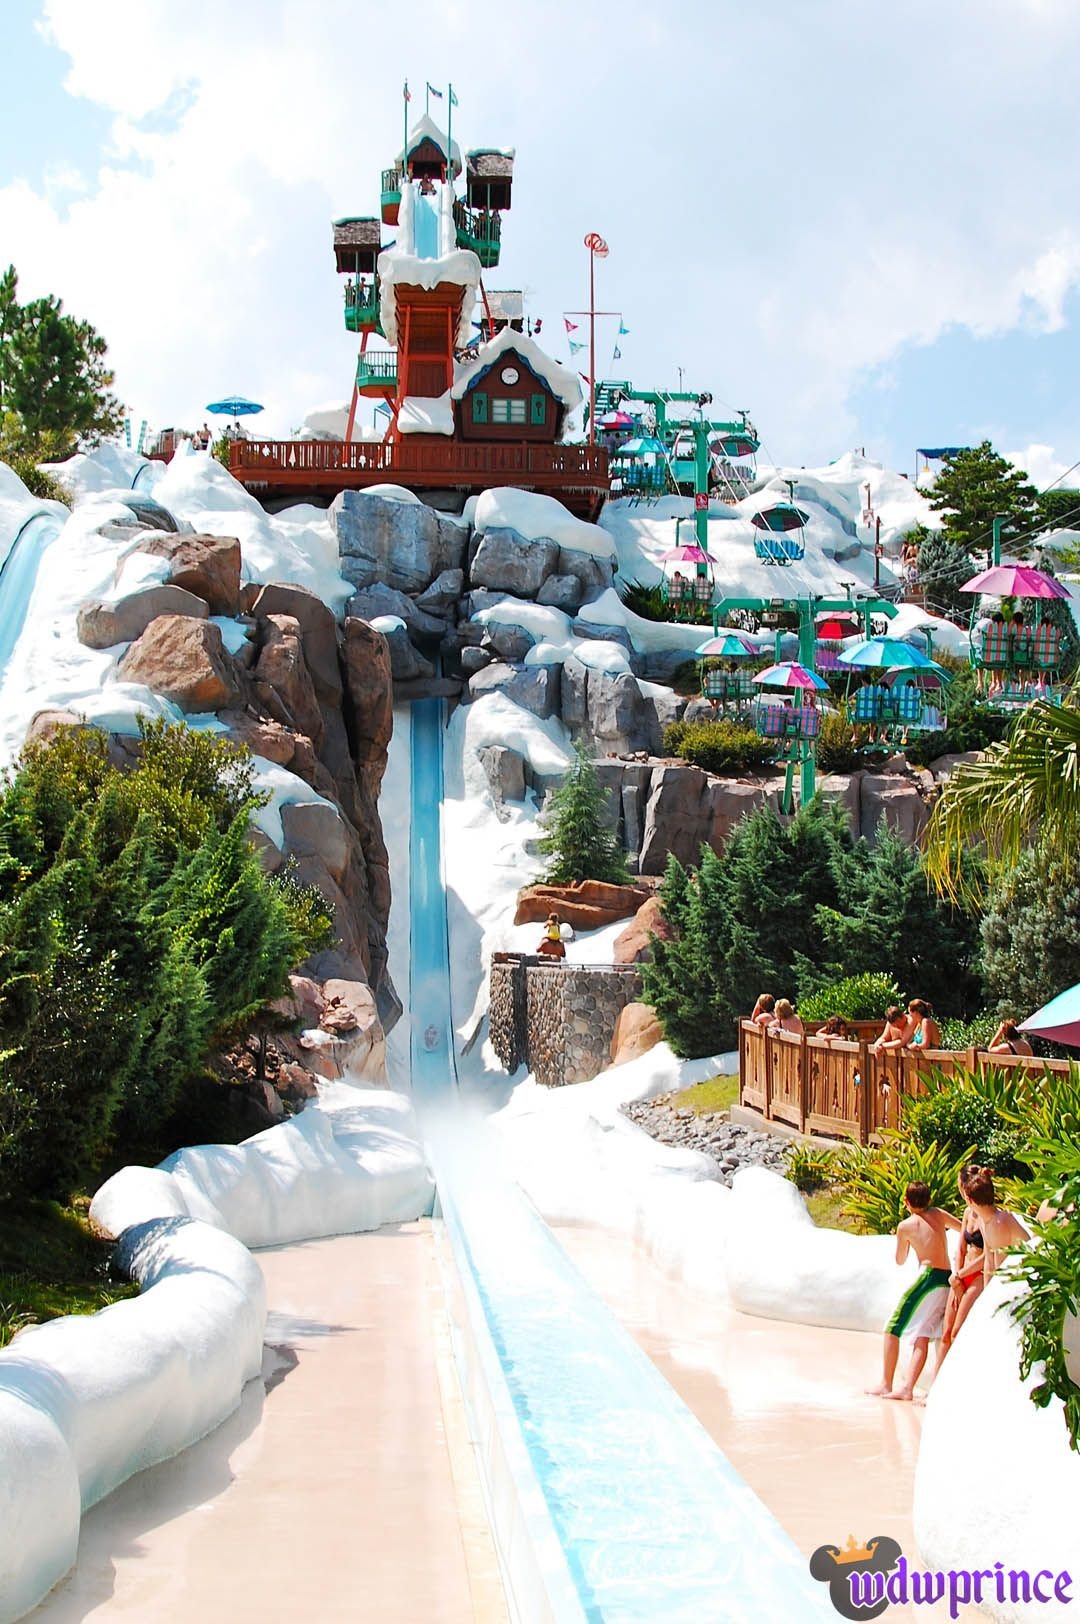 #3 Summit Plummet Disney' Blizzard Beach Walt Disney